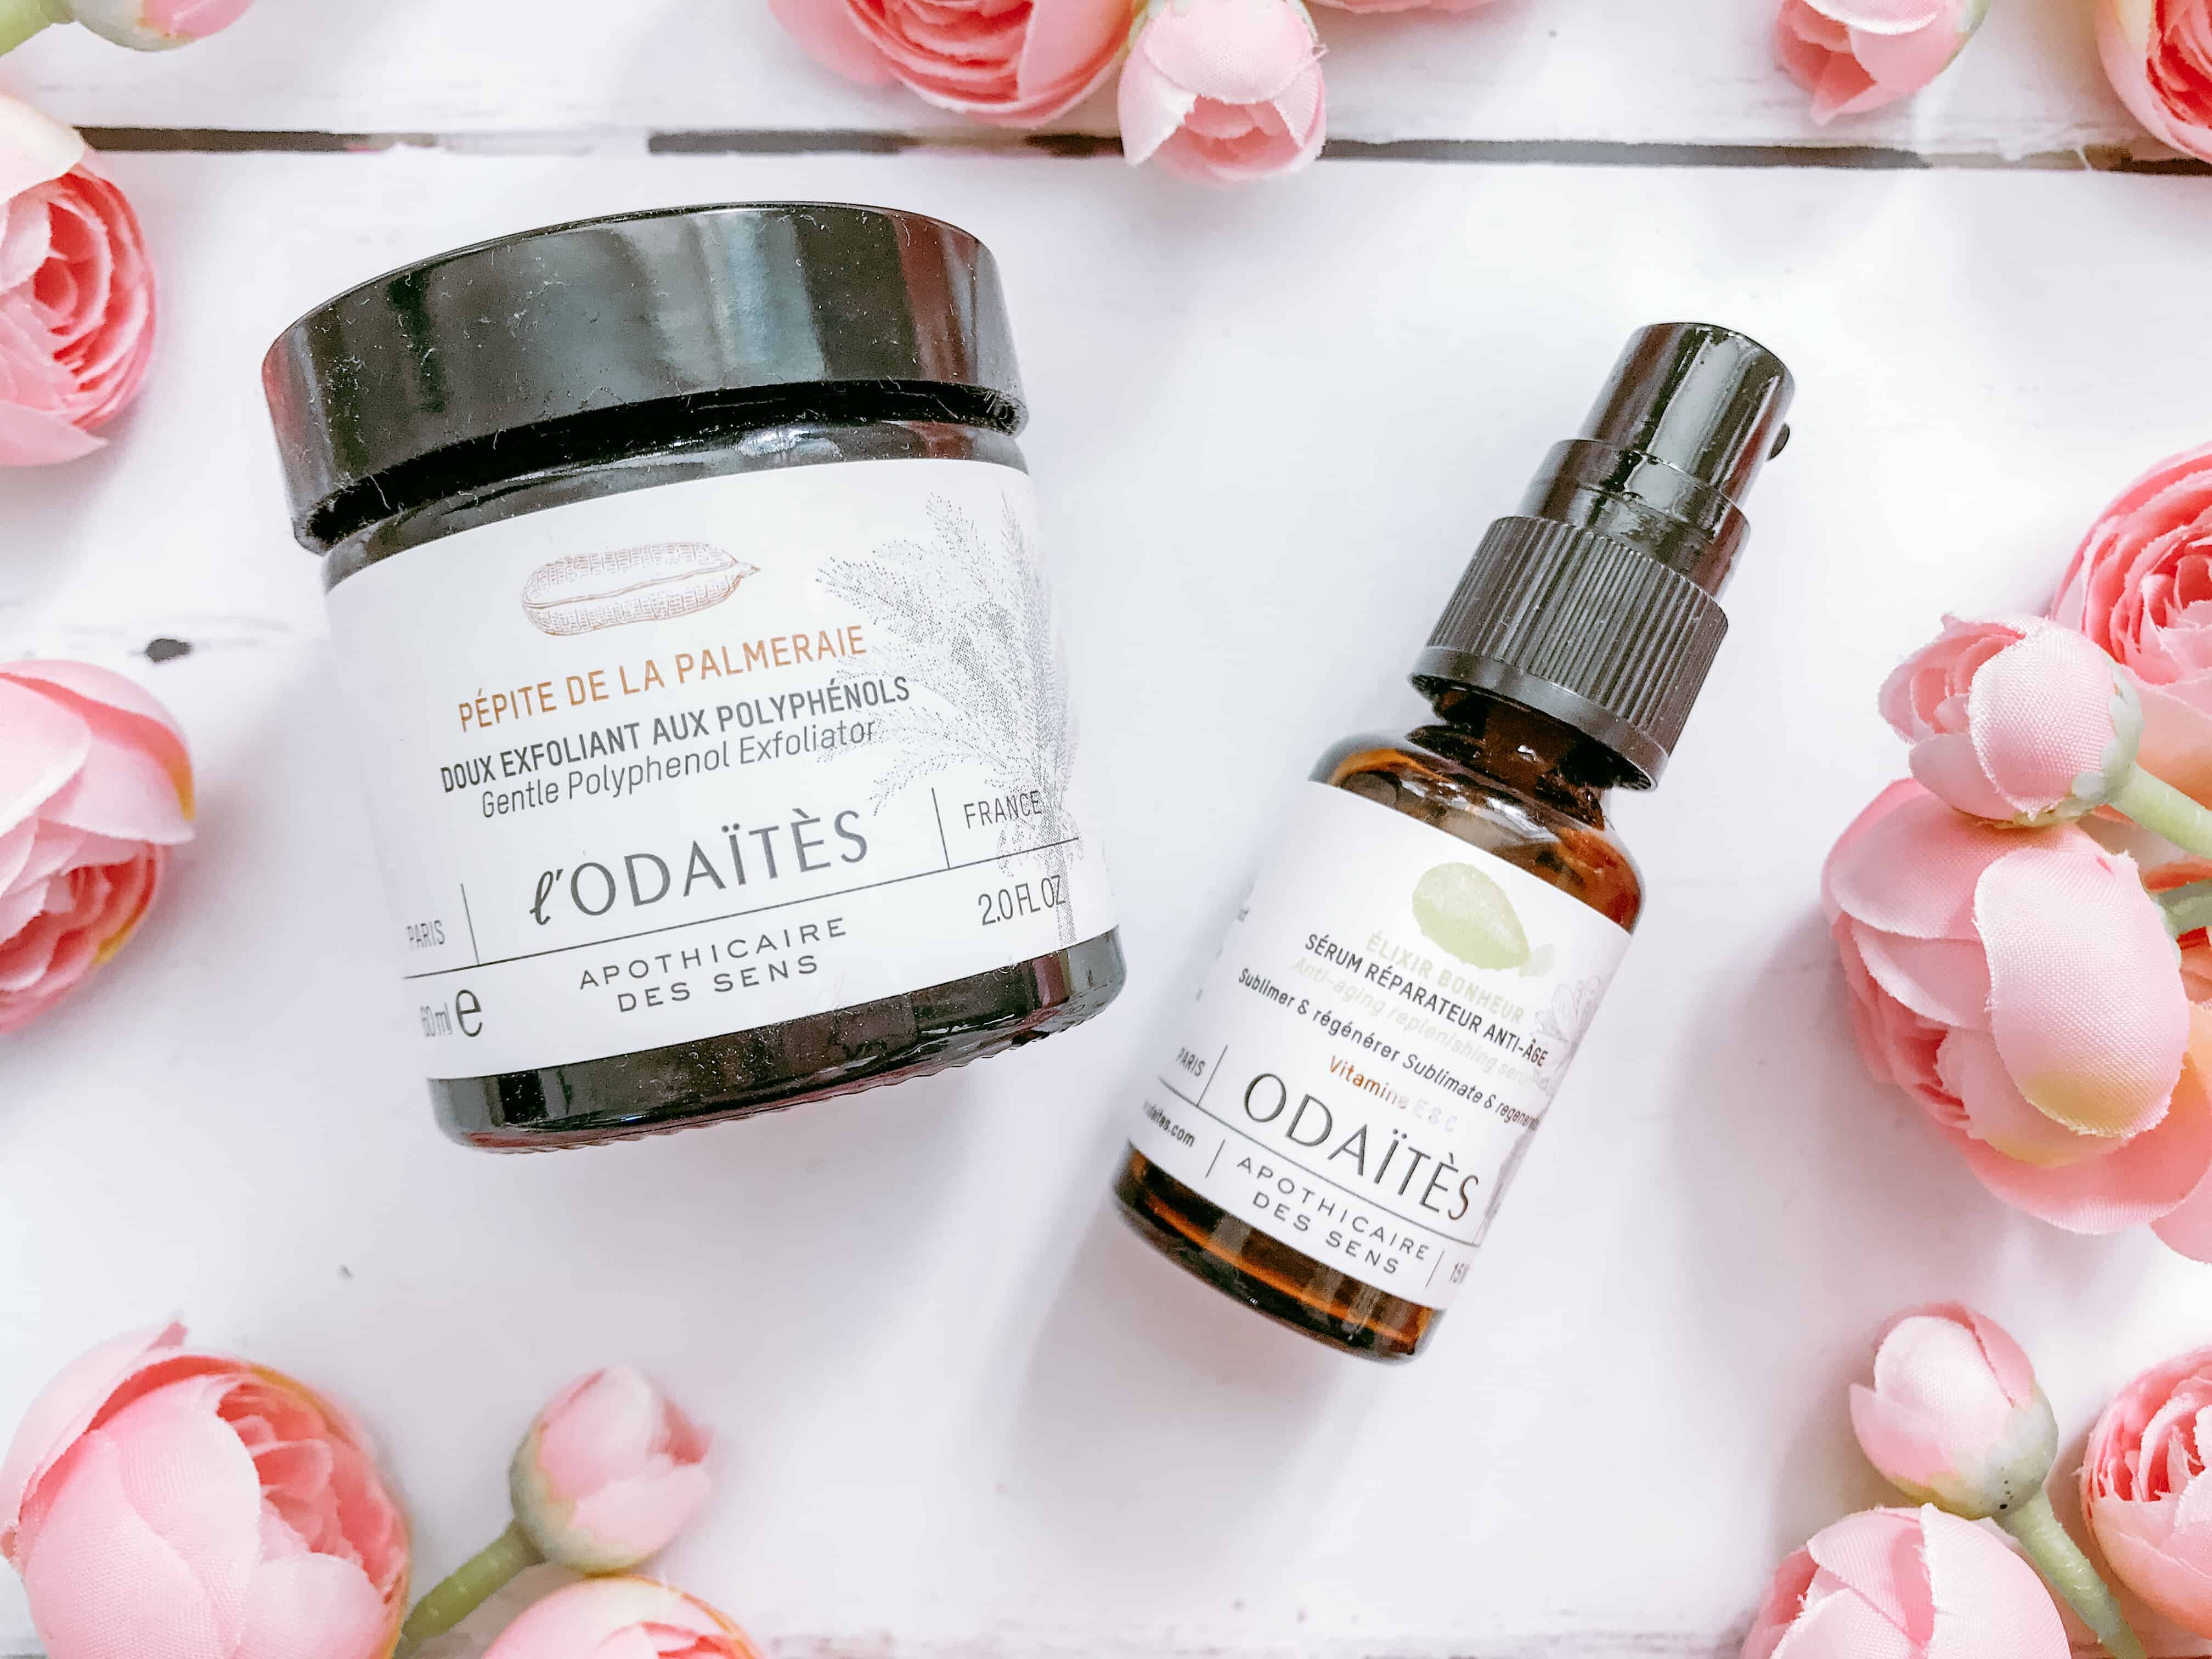 L'Odaites Review - Gentle Polyphenol Exfoliator and Anti-Ageing Replenishing Serum